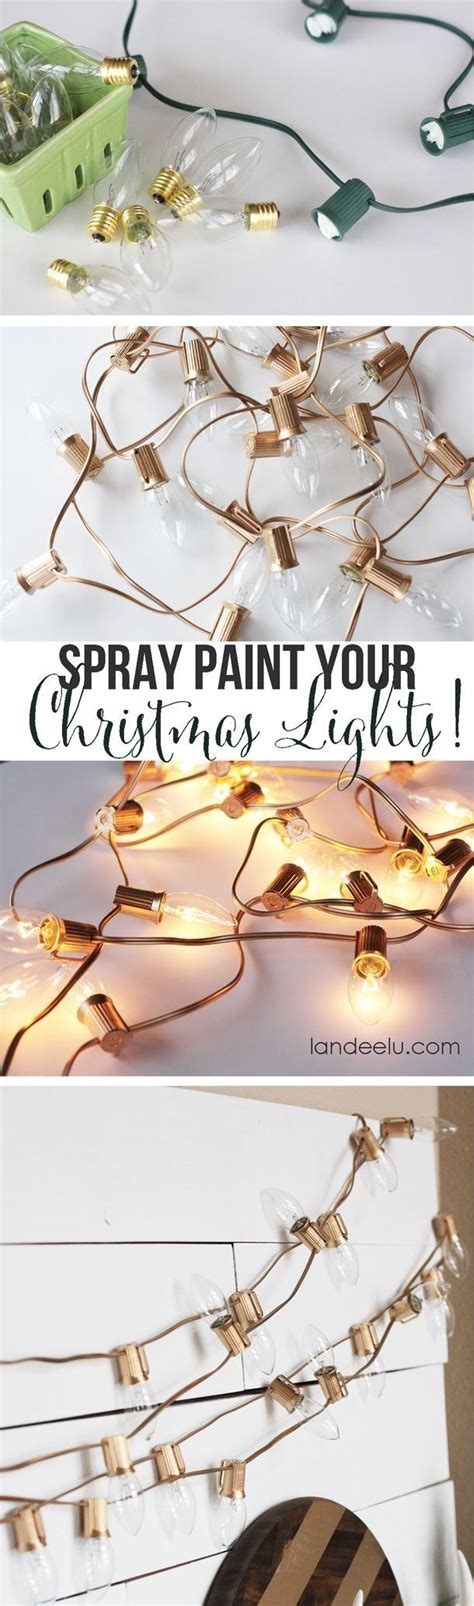 string light ideas 33 awesome diy string light ideas diy projects for